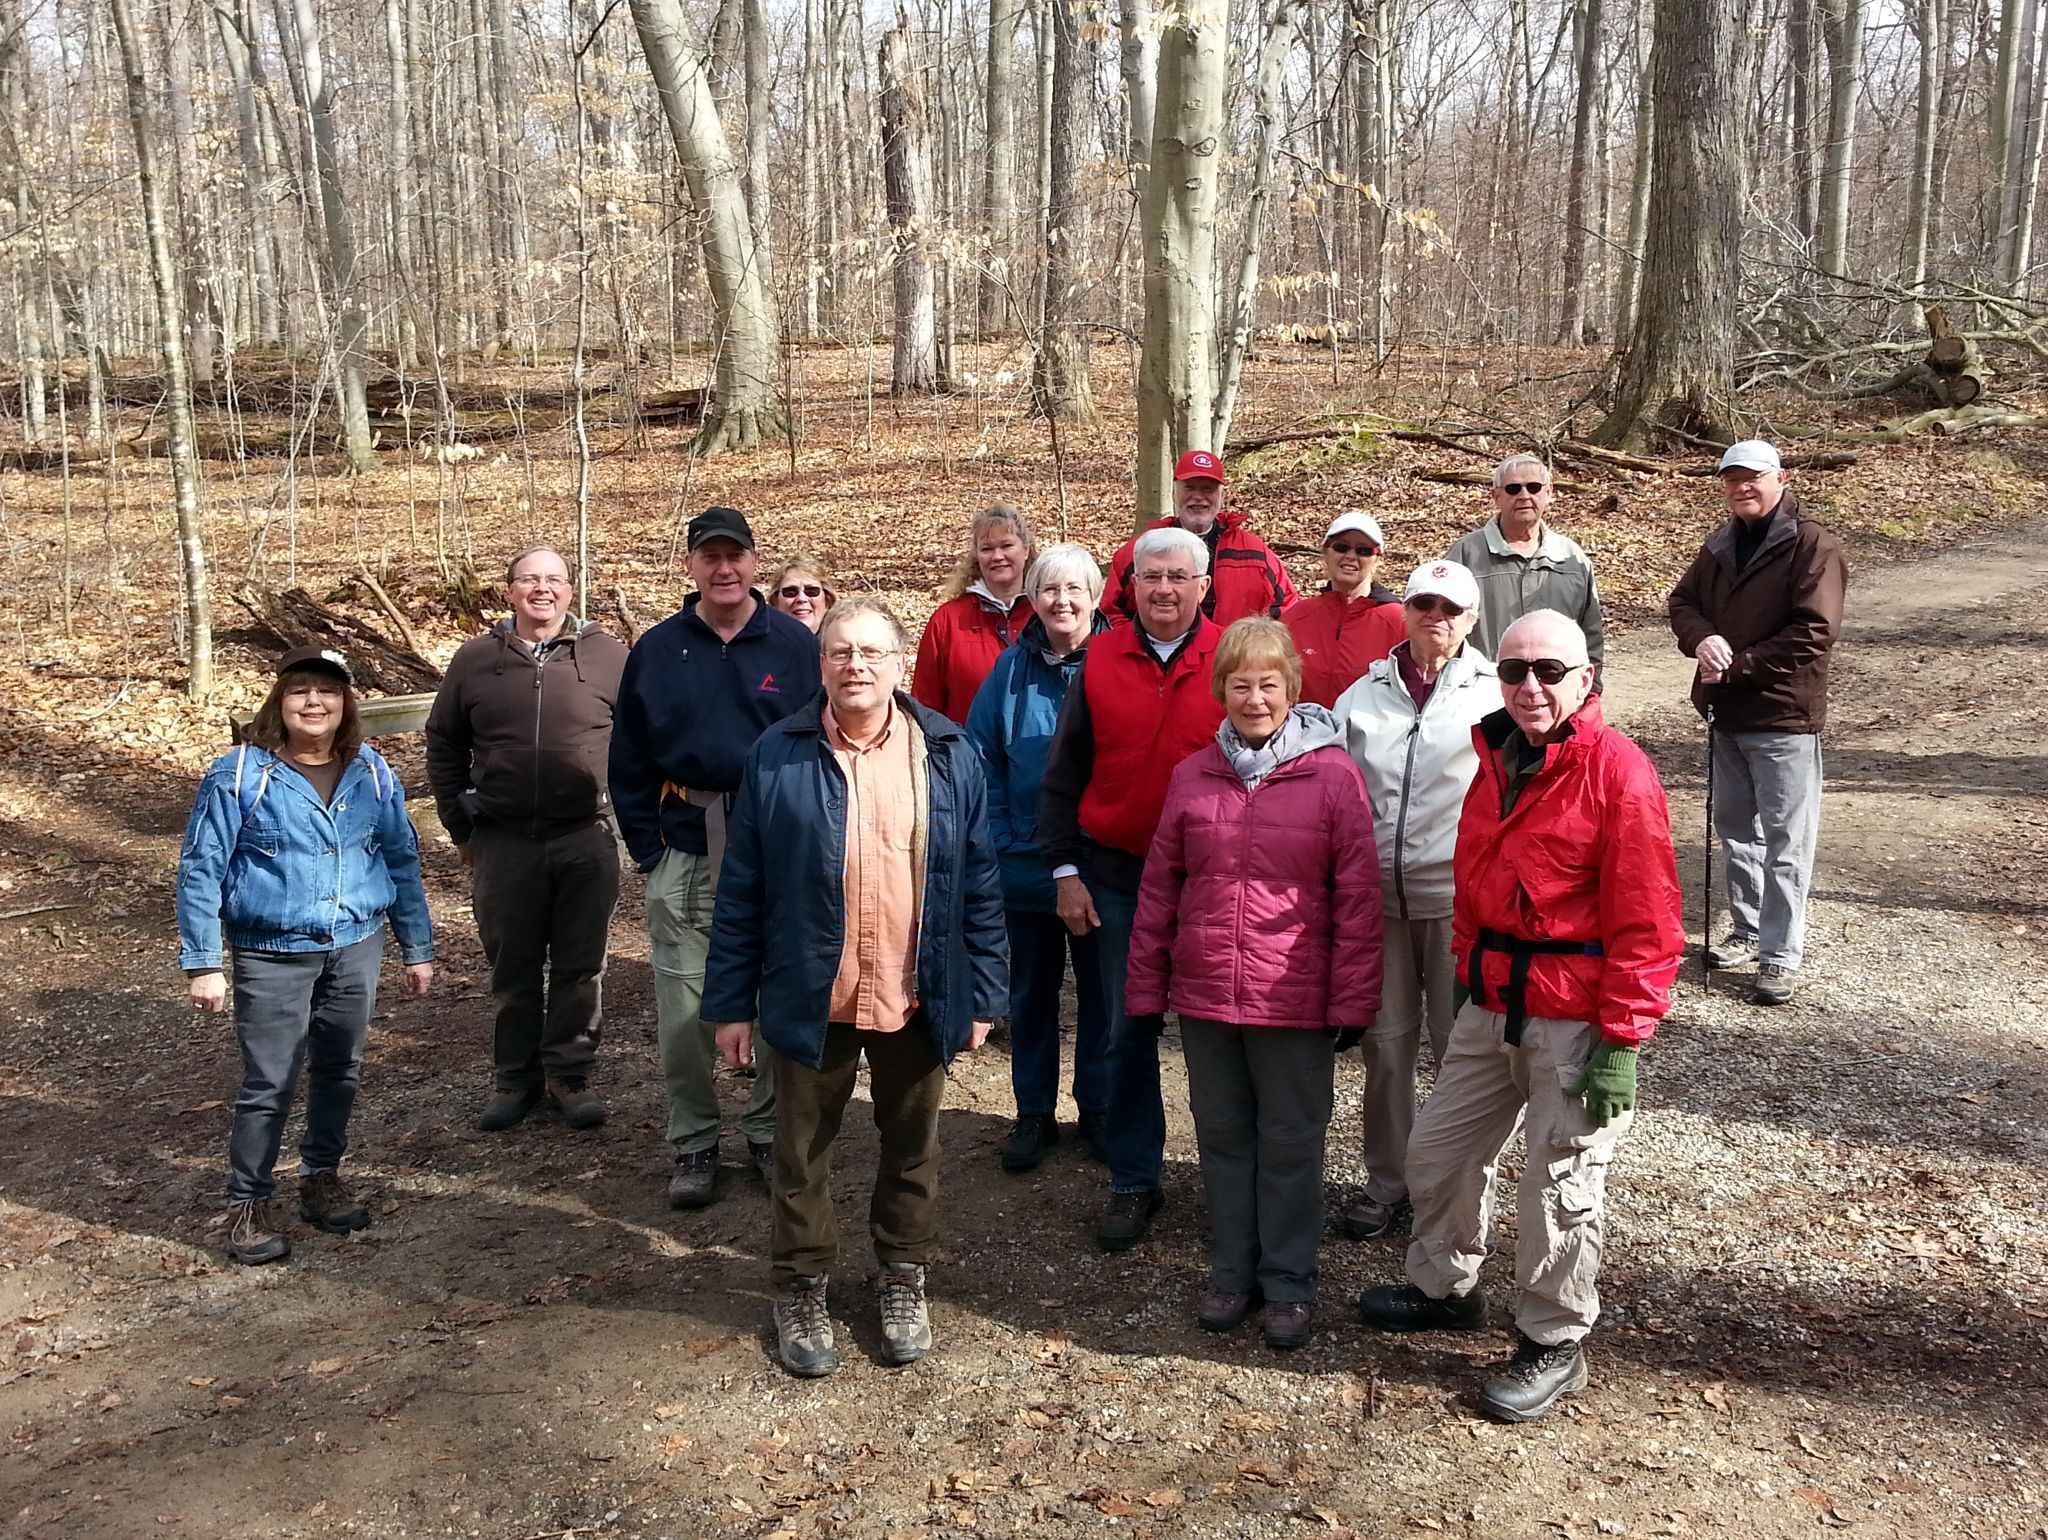 Sixteen of us enjoying mild winter day heading to pancake breakfast in Springwater, most in group got to see a pileated woodpecker on hike -- photo by Tom d'Entremont